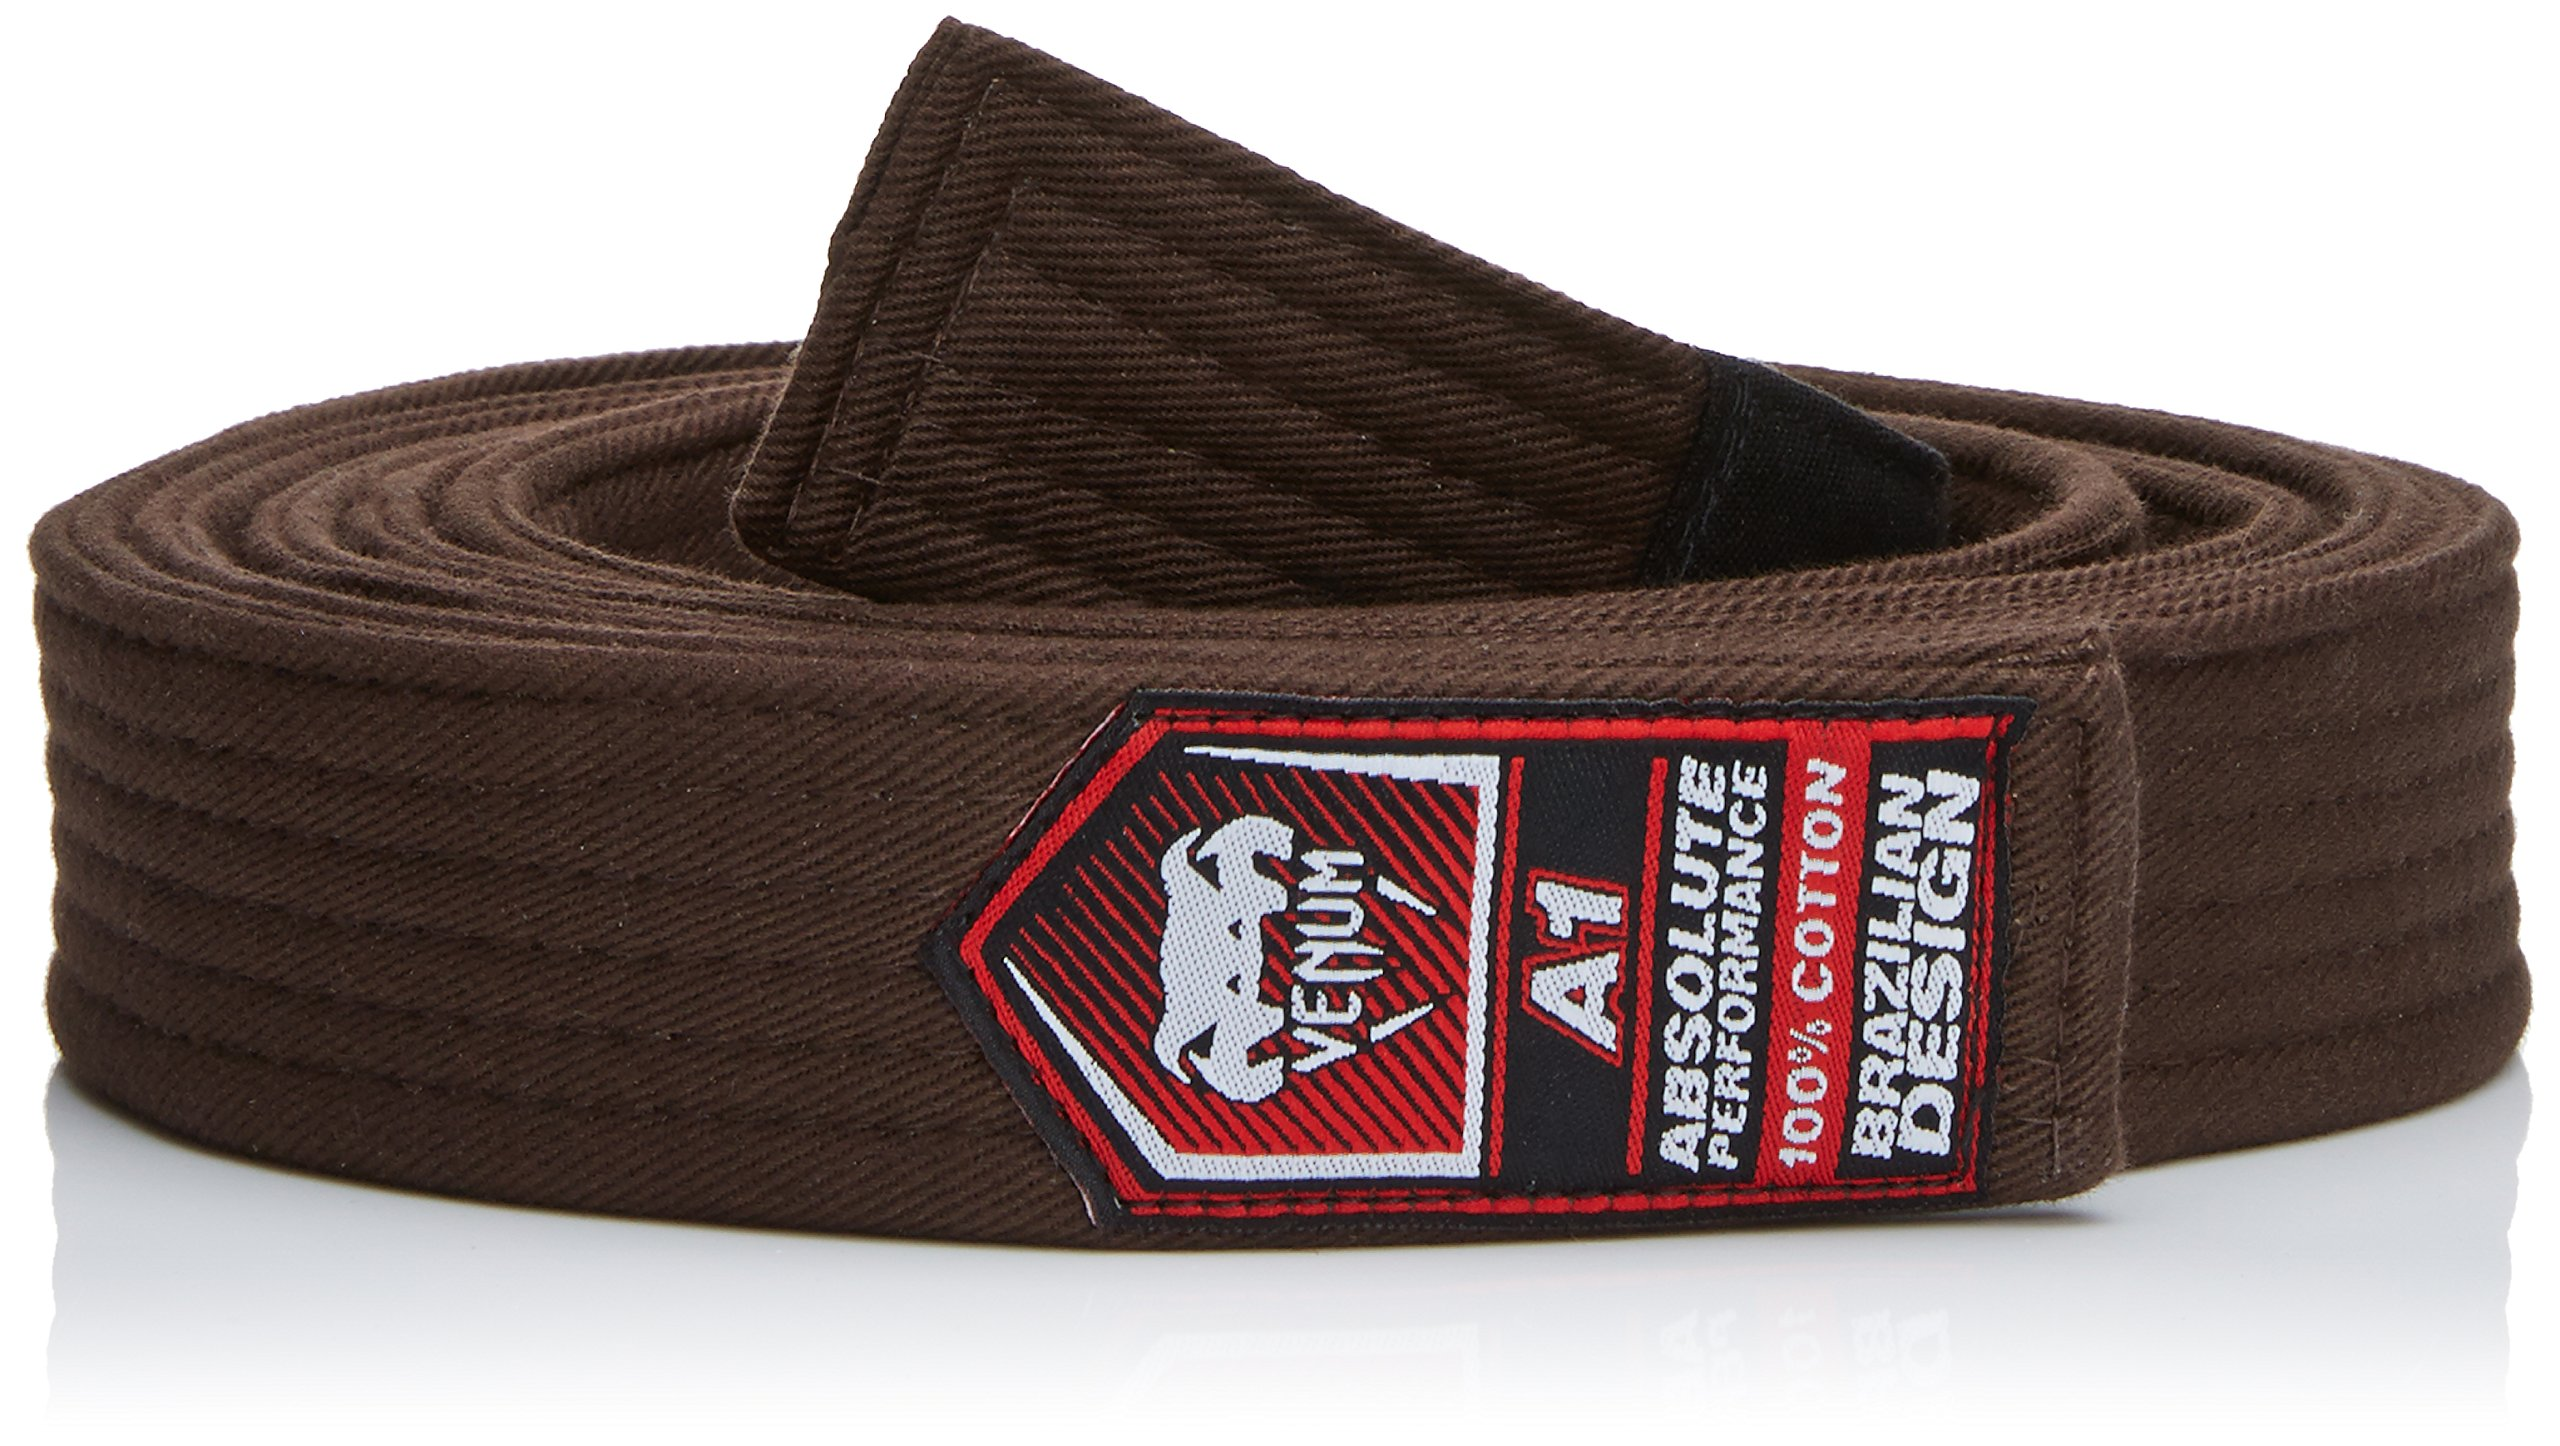 Venum BJJ Belt, Brown, A3 by Venum